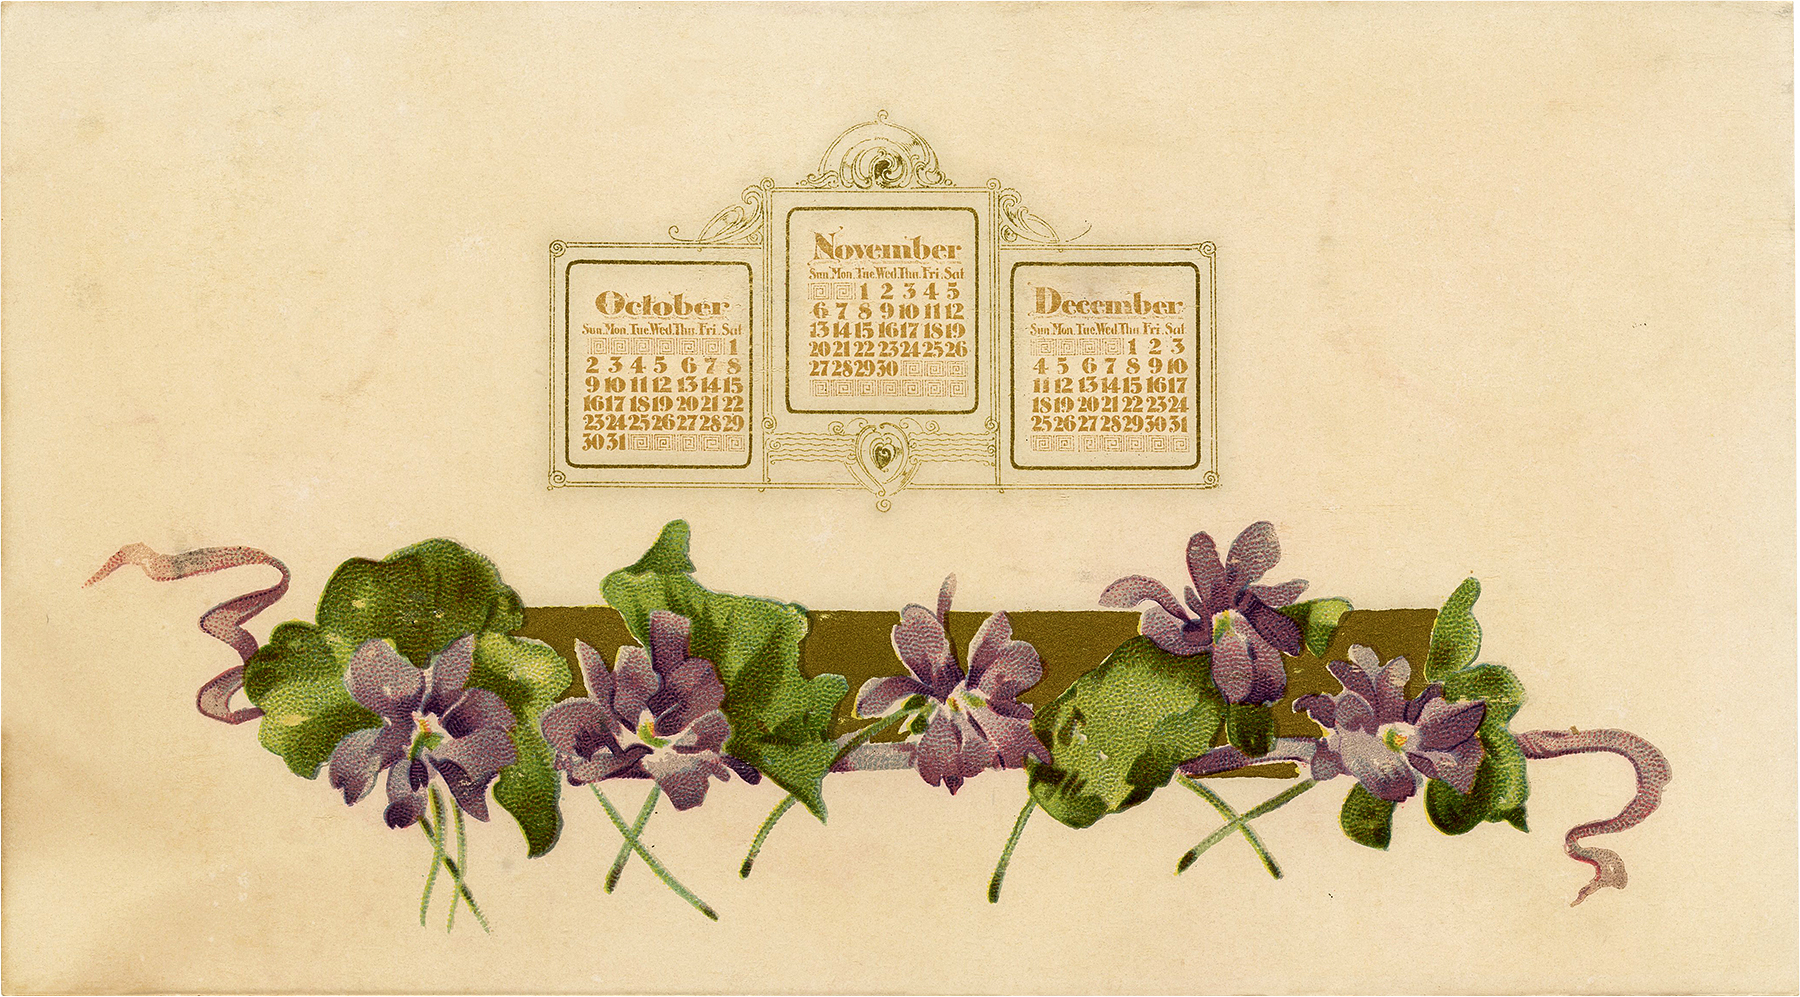 Beautiful Nostalgic Violets and Ribbons Calendar Graphic